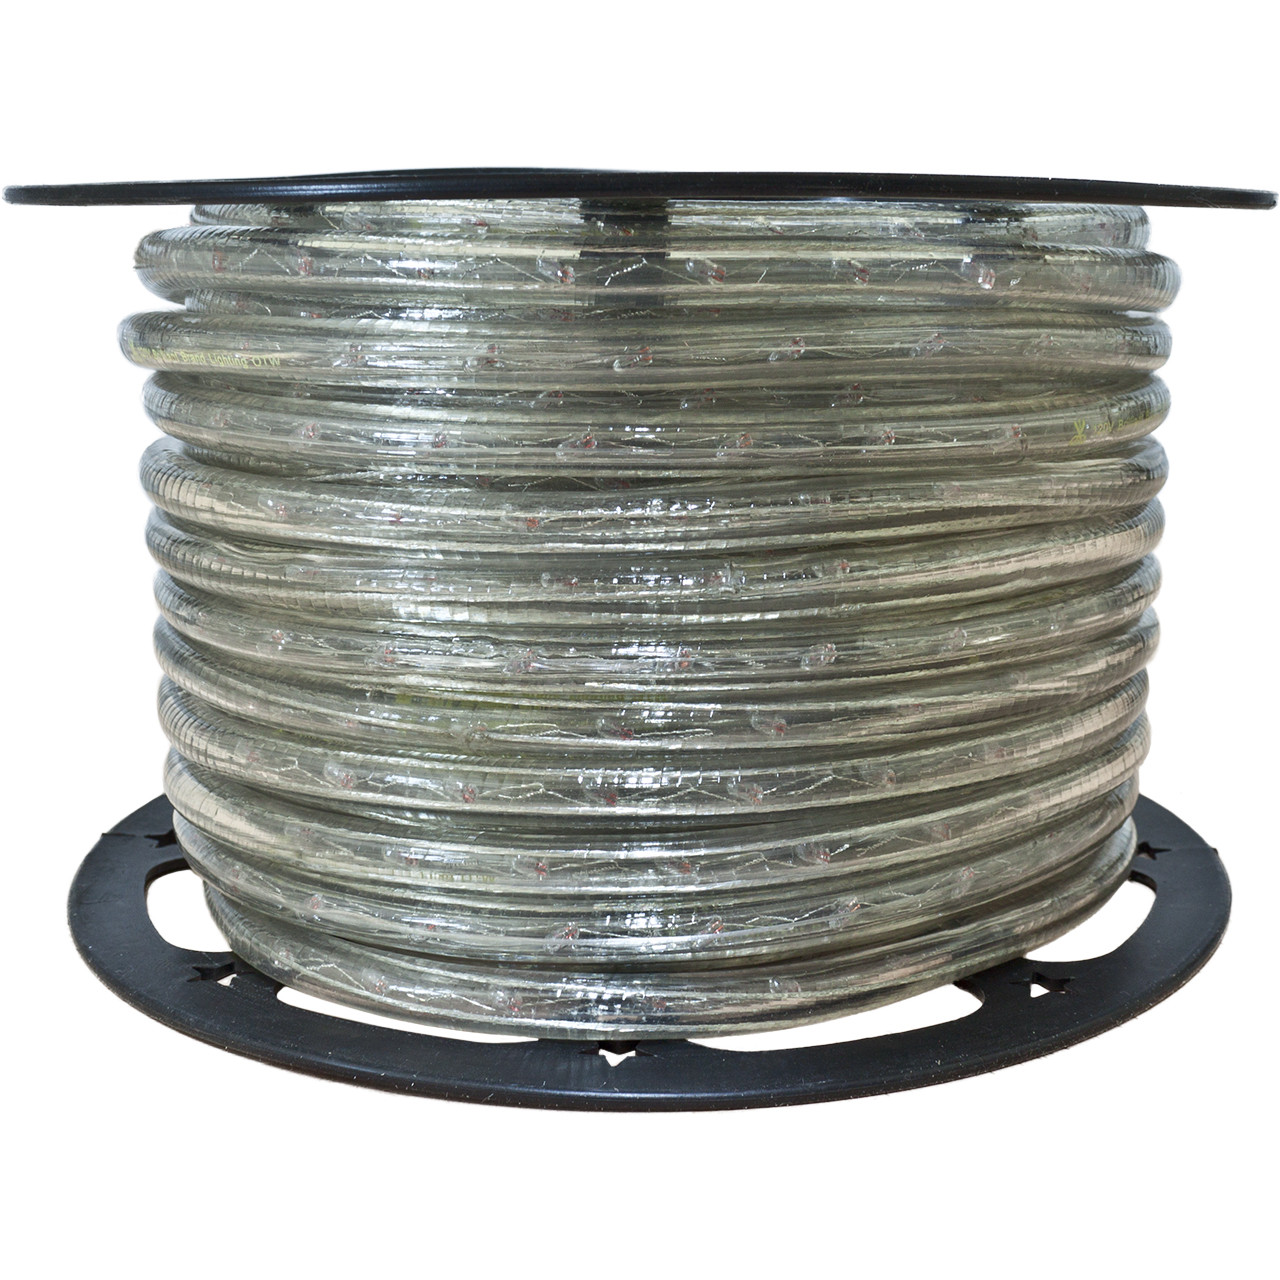 Clear incandescent rope light 120 volt 12 inch 148 feet clear incandescent rope light 120 volt 12 inch 148 feet aloadofball Gallery